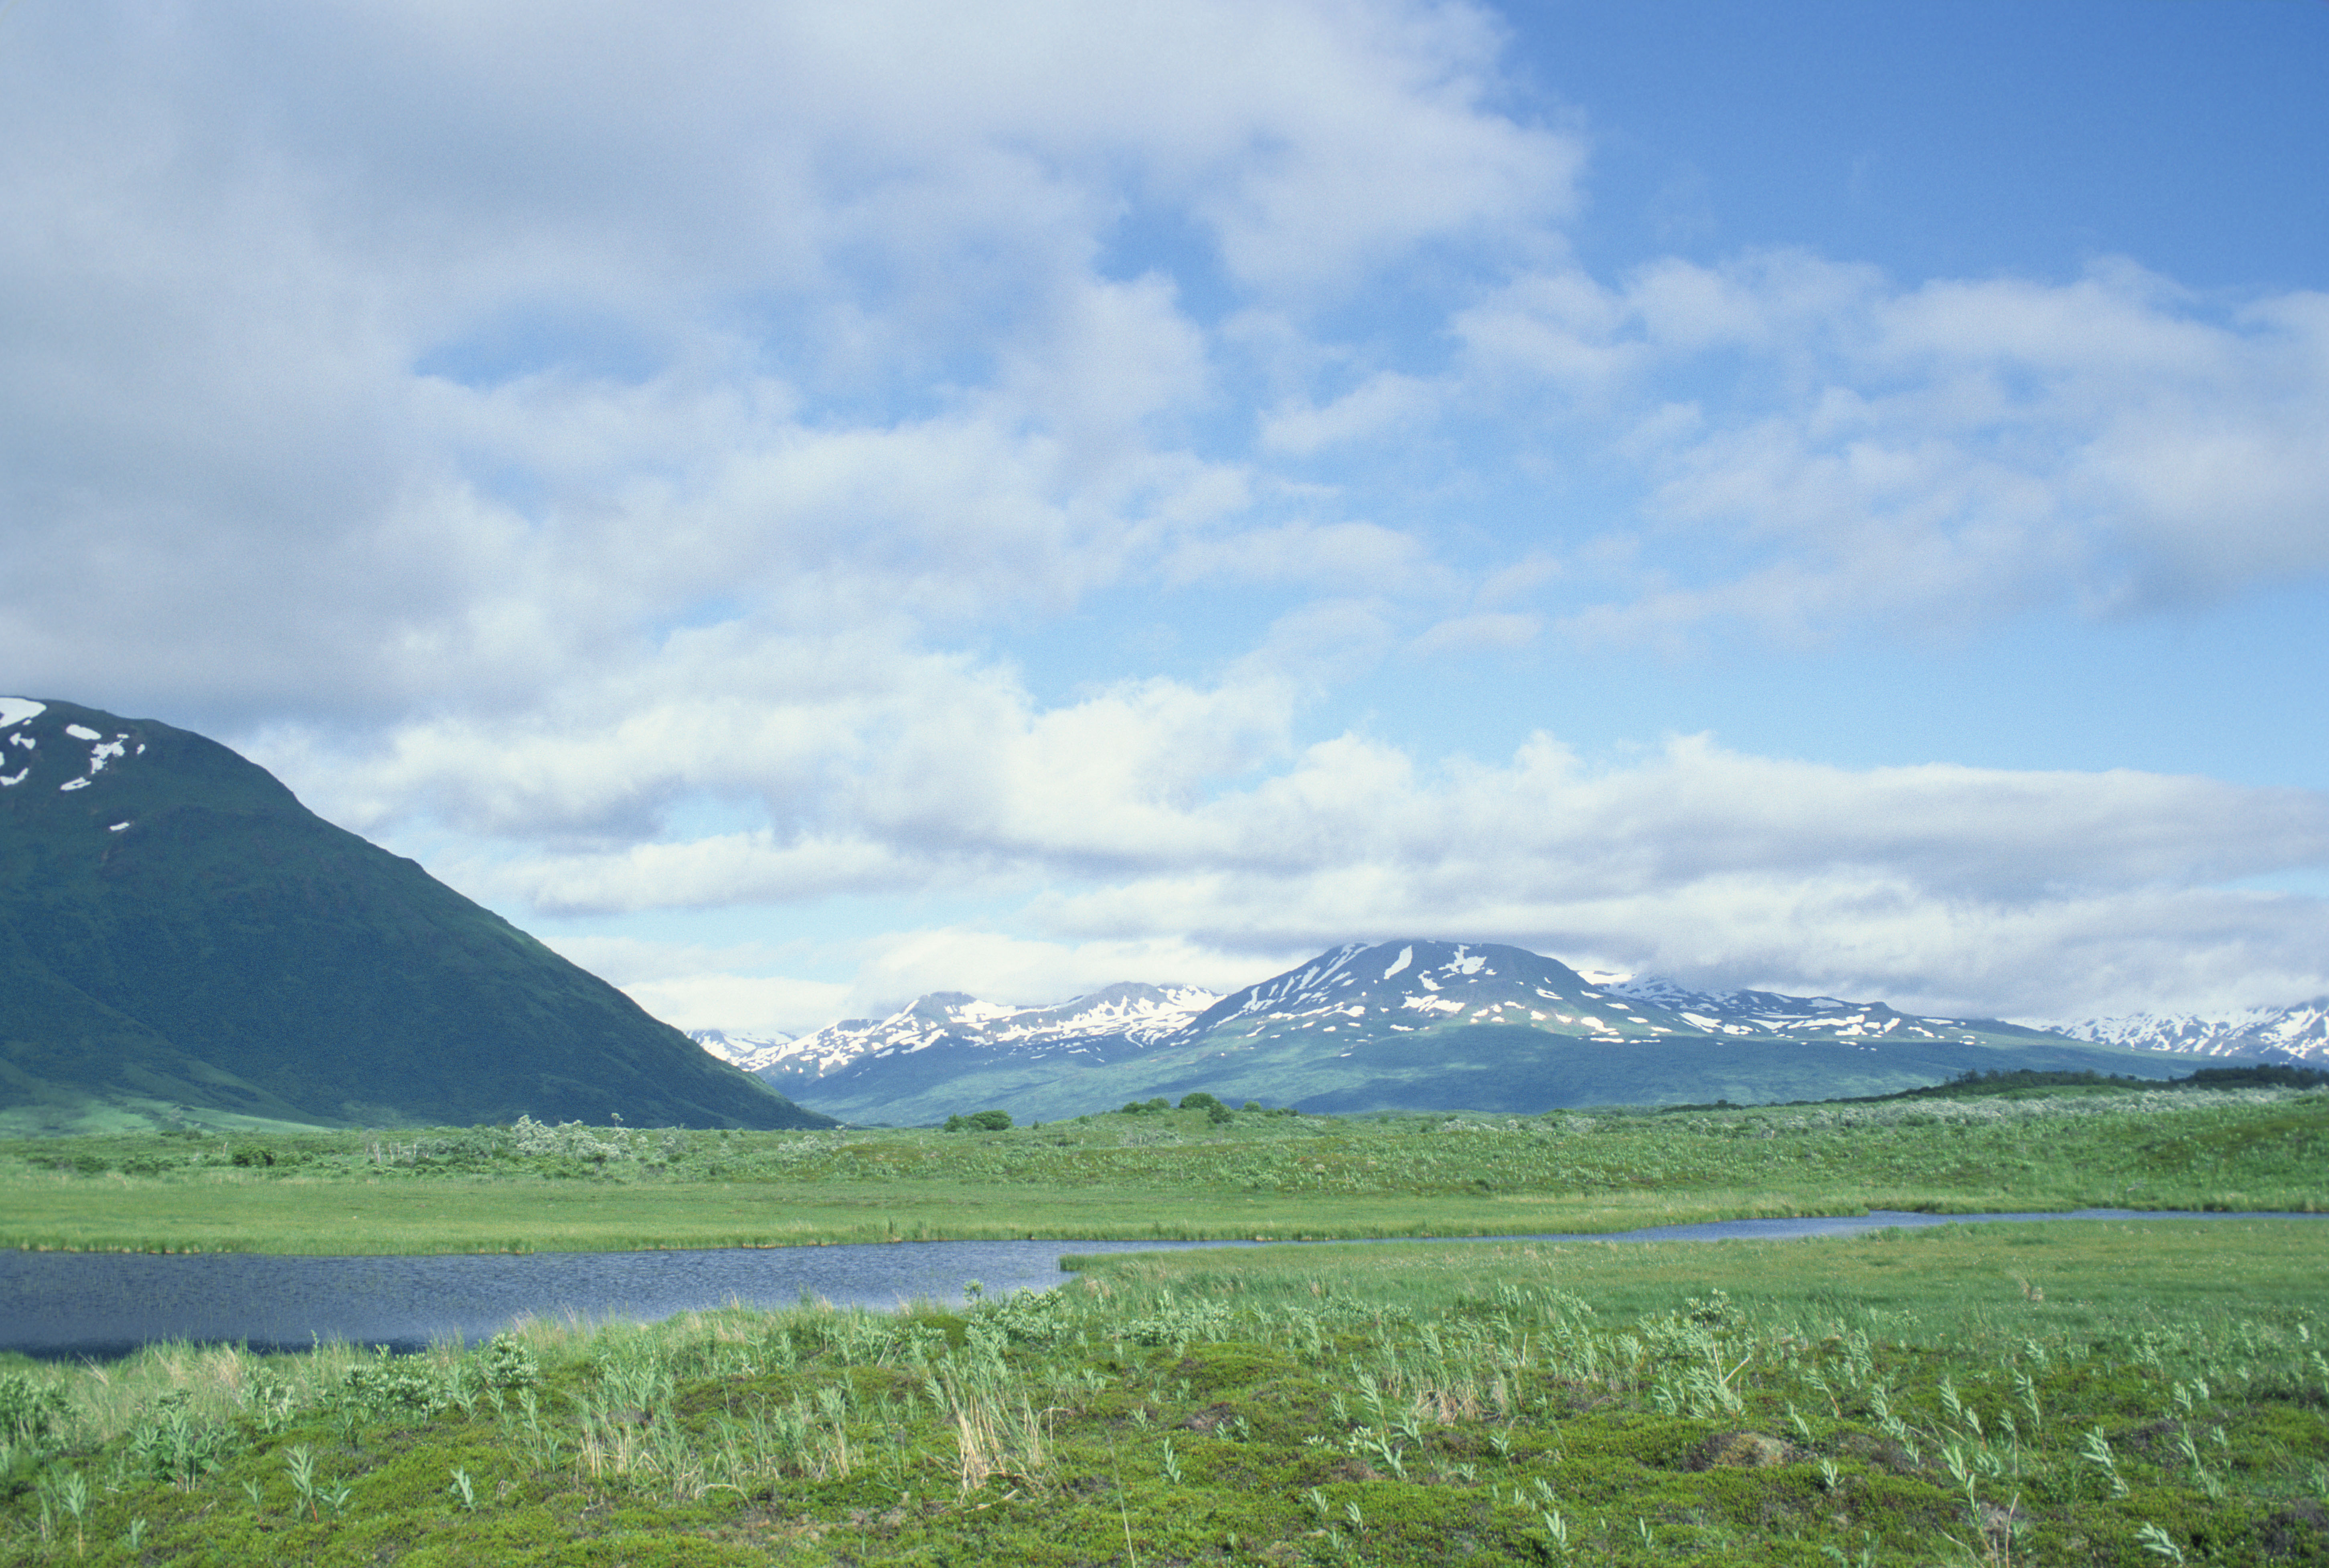 Alaska Kodiak National Wildlife Refuge